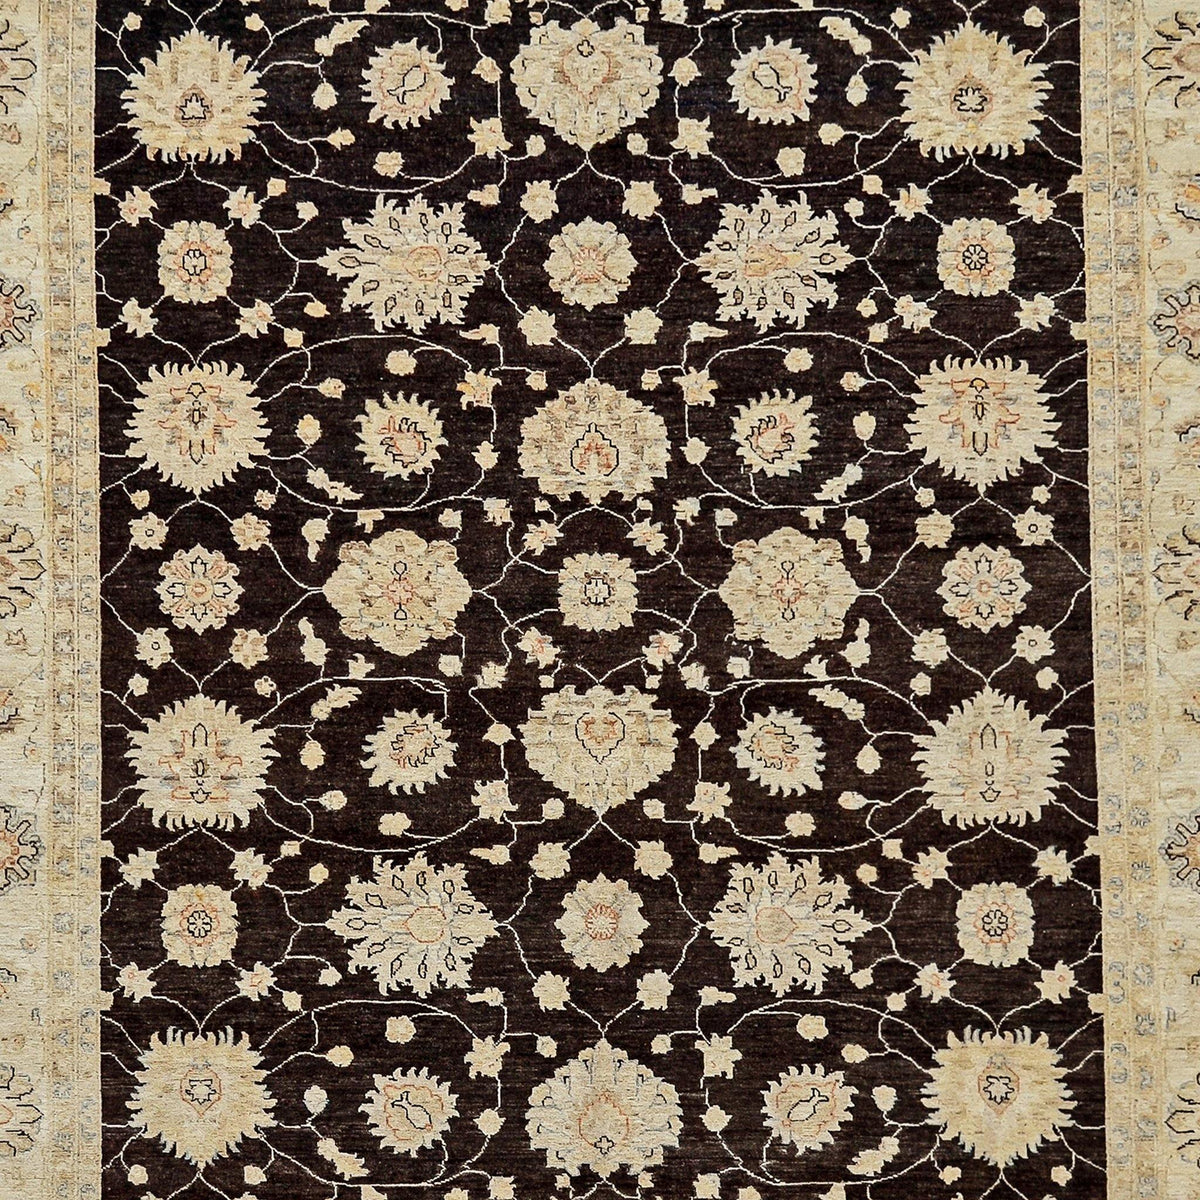 Fine Hand-knotted Transitional Wool Rug 244cm x 319cm Persian-Rug | House-of-Haghi | NewMarket | Auckland | NZ | Handmade Persian Rugs | Hand Knotted Persian Rugs